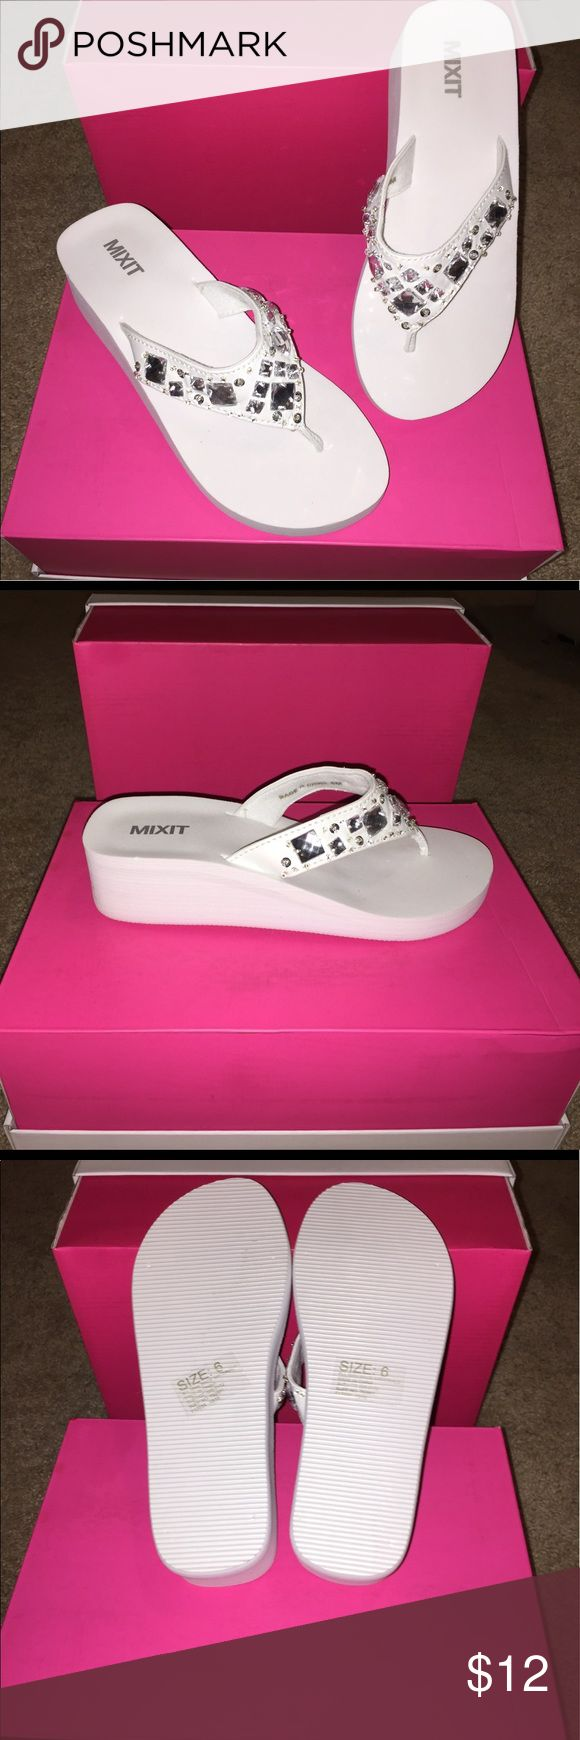 NEVER WORN sparkling white sandals 💍 MIXIT brand white wedge flip flops 👣 Shoes Sandals